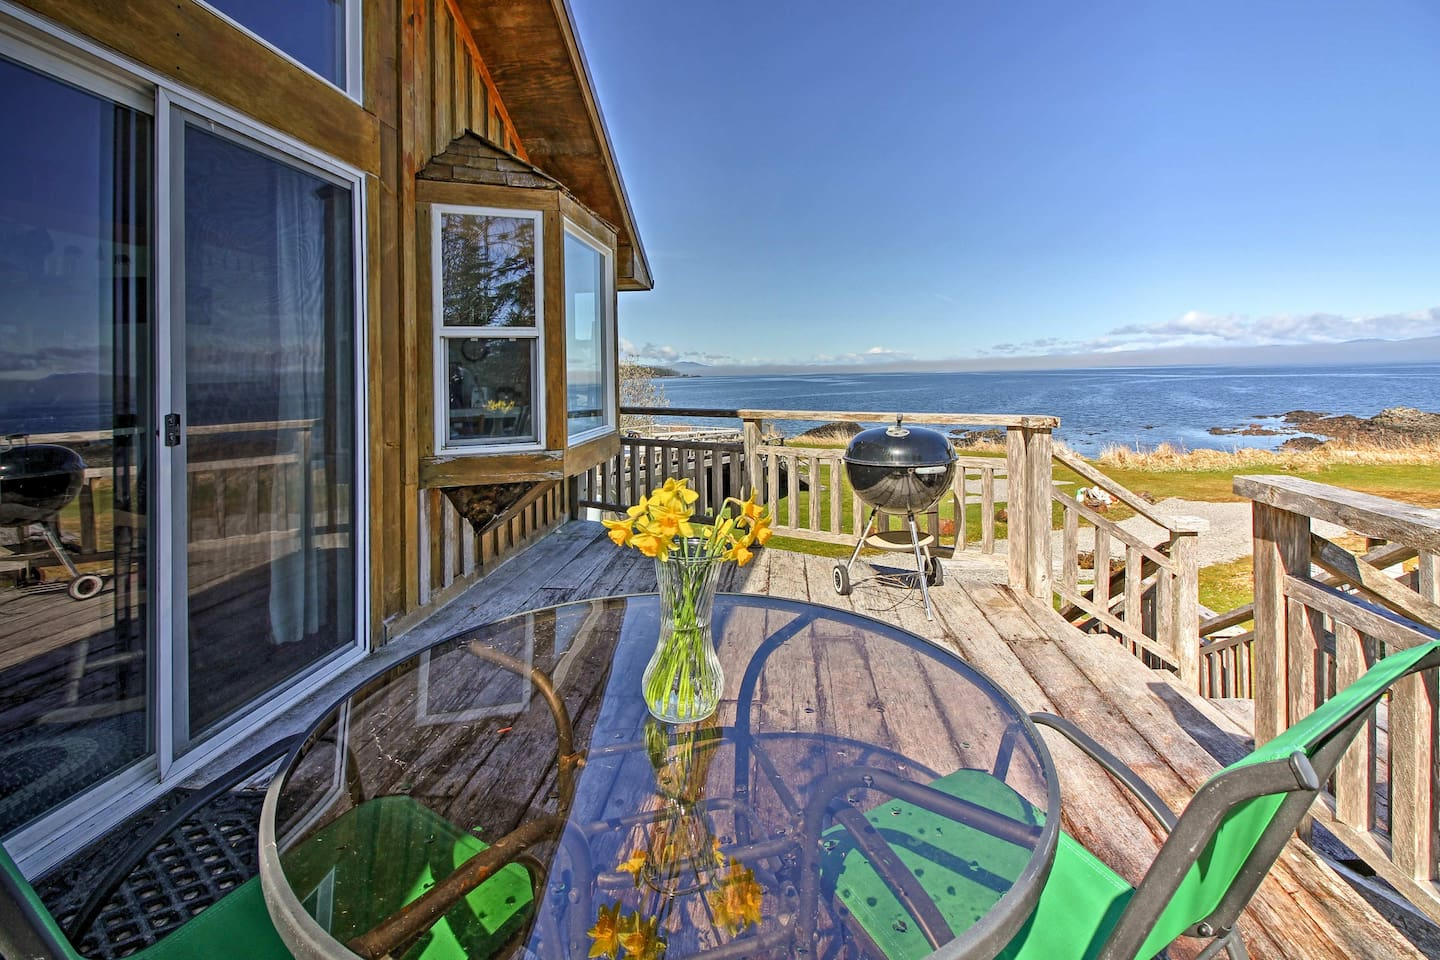 Get the most out of your getaway at this vacation rental studio Coffman Cove!